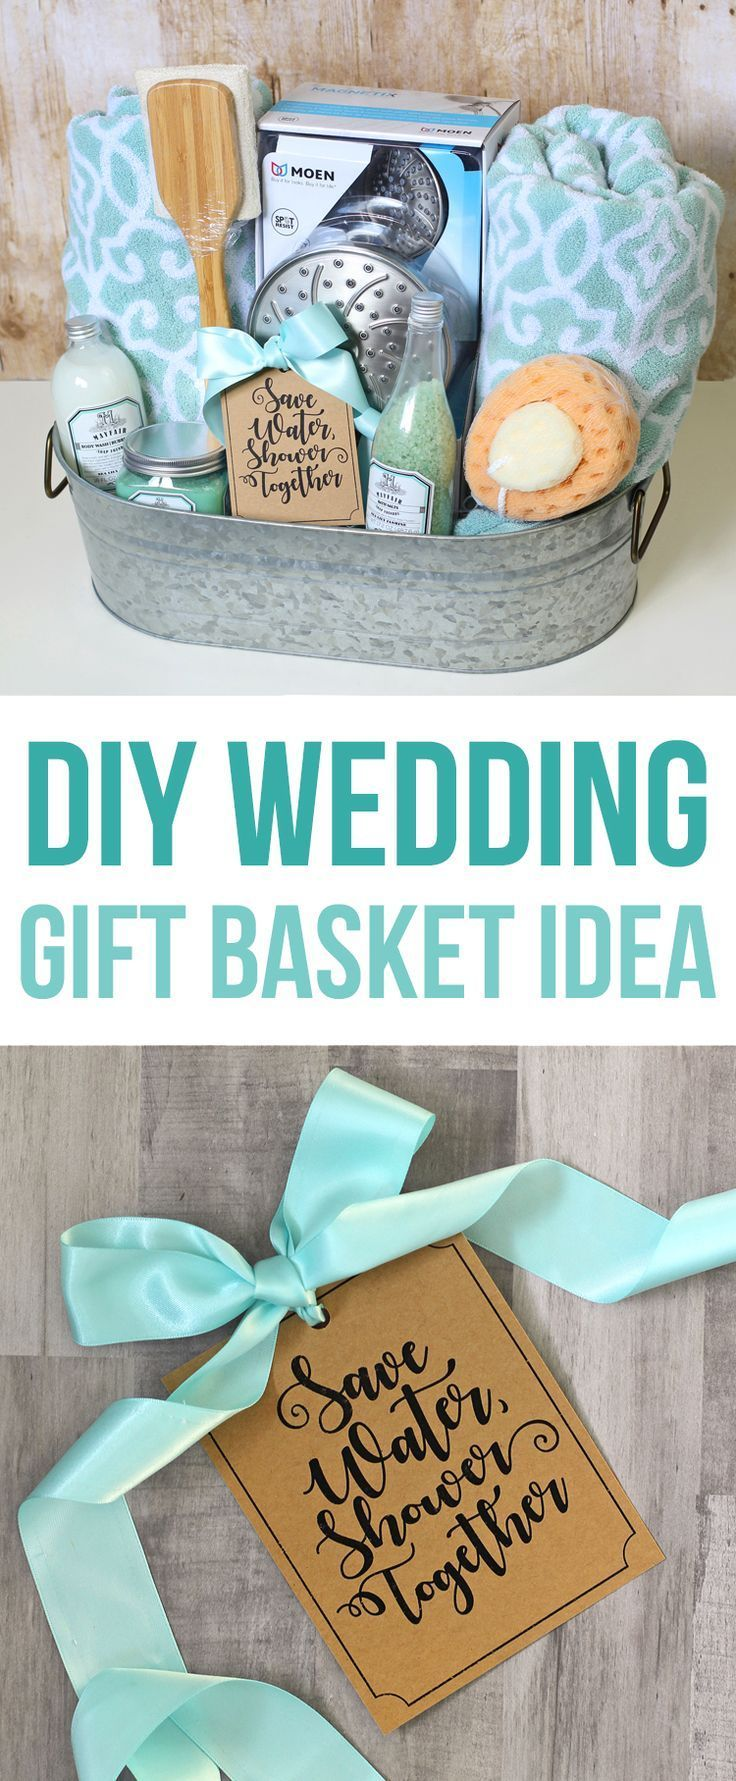 25 Well-Themed Gift Basket Ideas for Any Ocassion | Metal tins ...